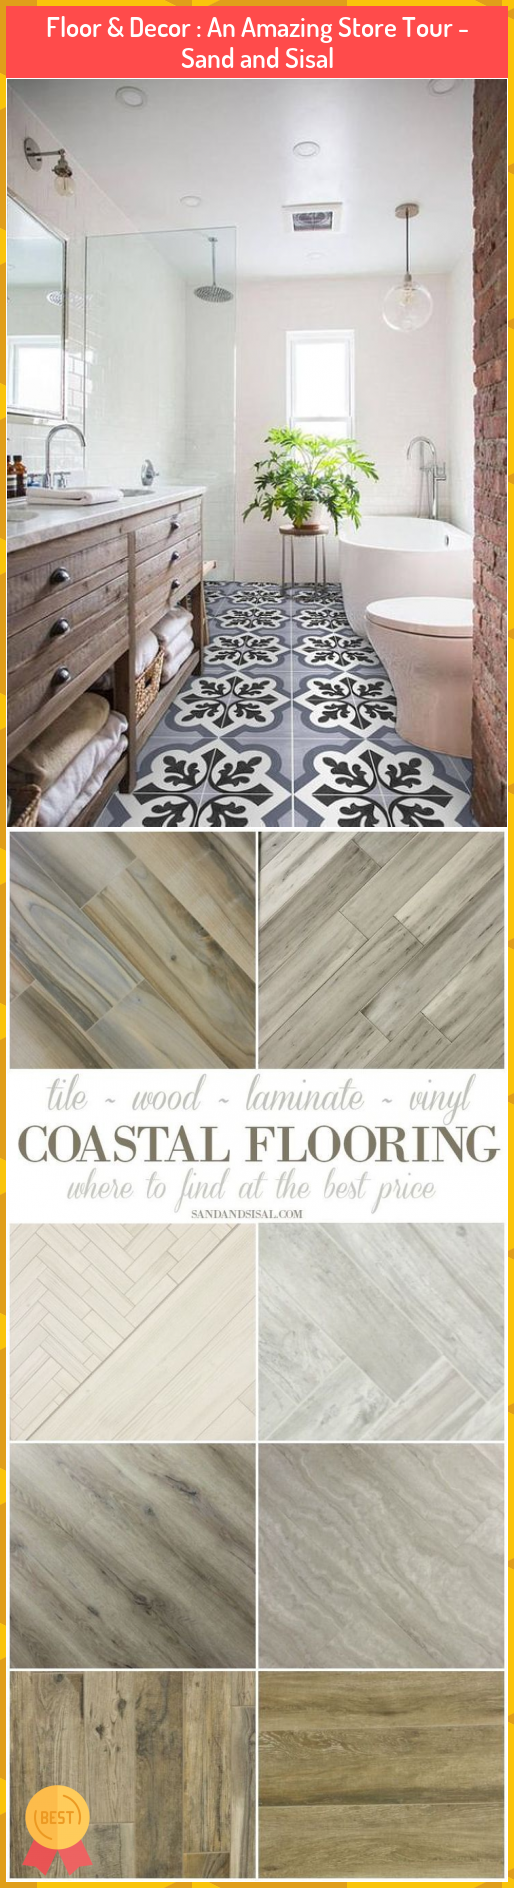 Floor Decor An Amazing Store Tour Sand And Sisal Floor Decor Amazing Store Tour Sand And Sisal Floor Decor Flooring Decor